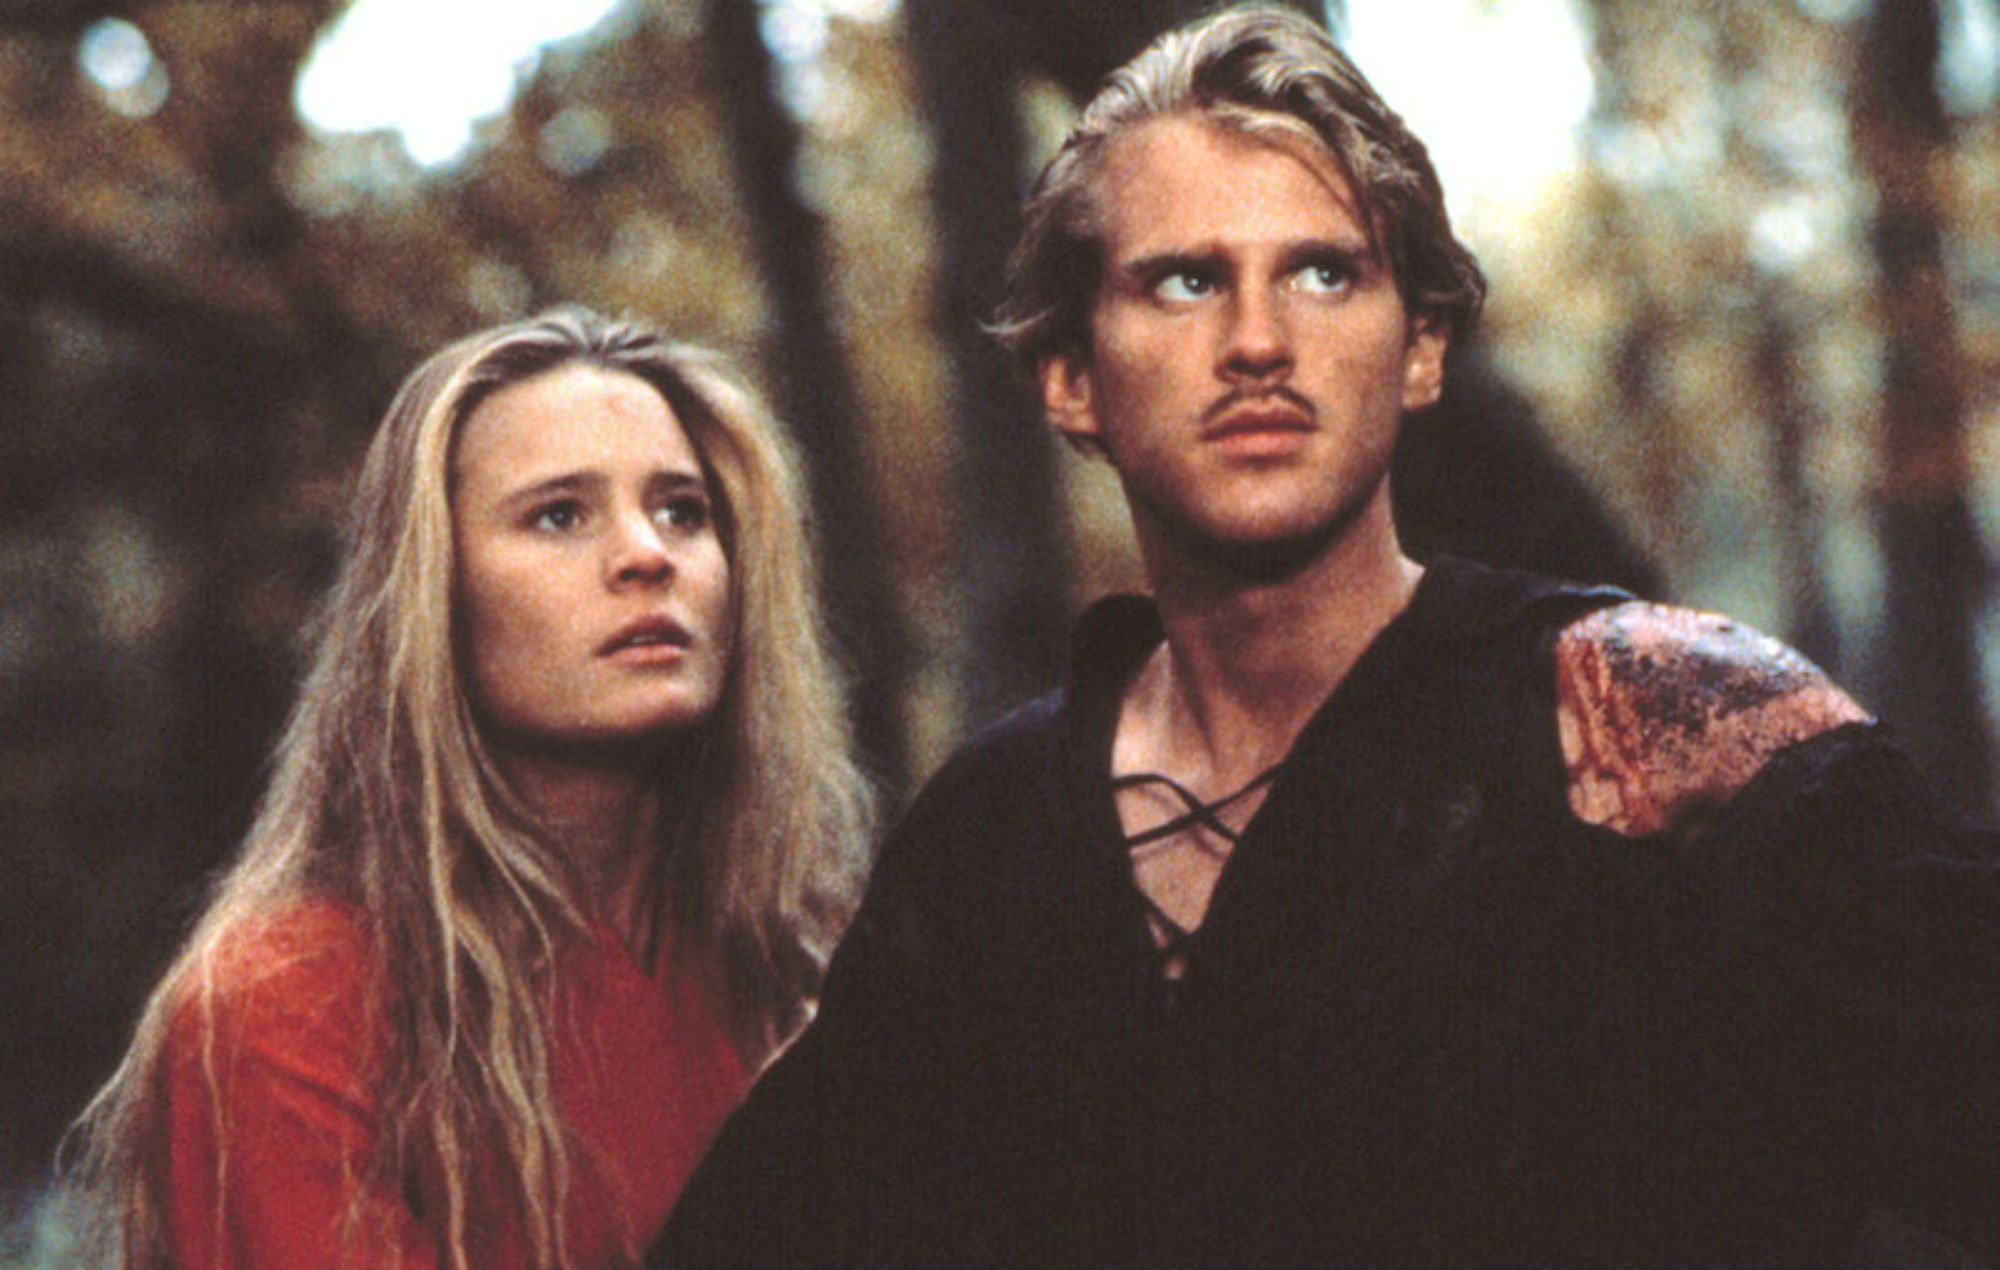 Westley and Buttercup from the Princess Bride